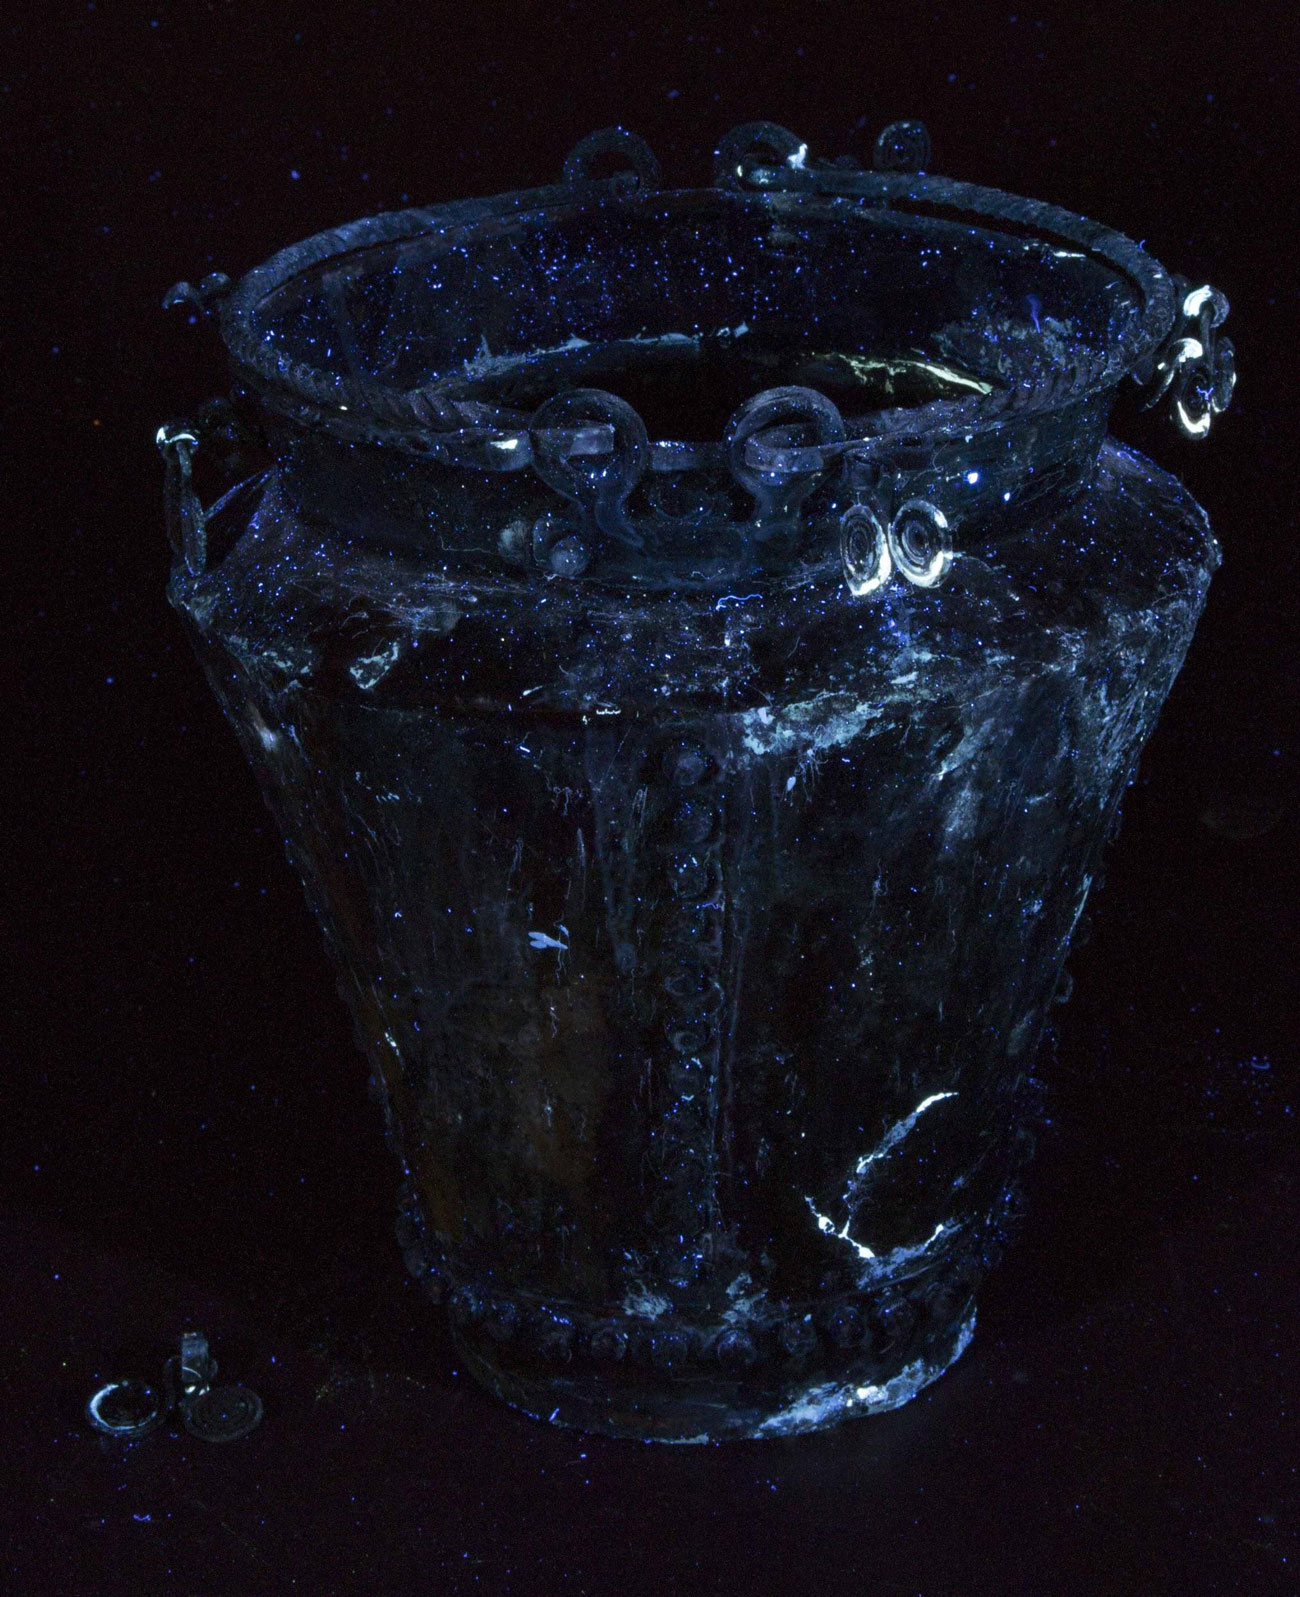 A dark image of a bucket vessel showing faint swirls and patches